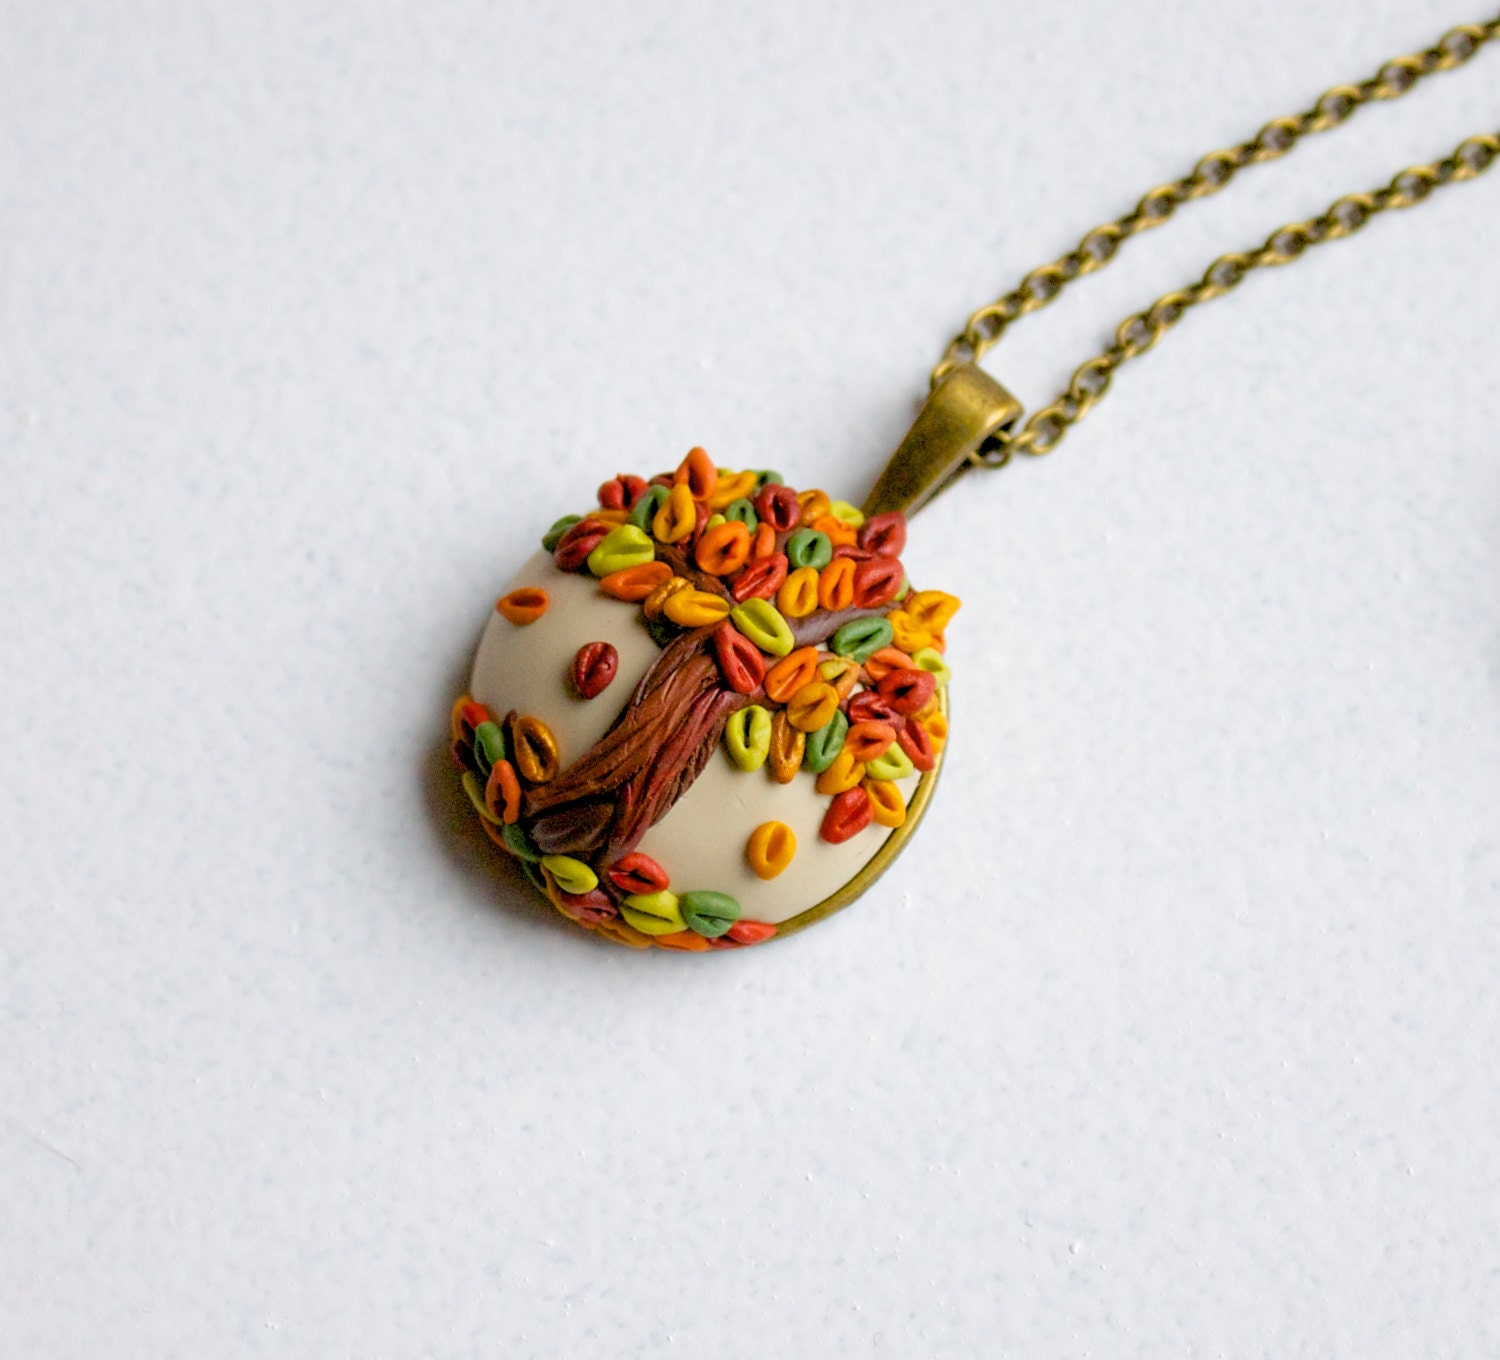 Fall tree pendant - polymer clay tree necklace - colorful autumn leaves - TheCraftyBeeOnline